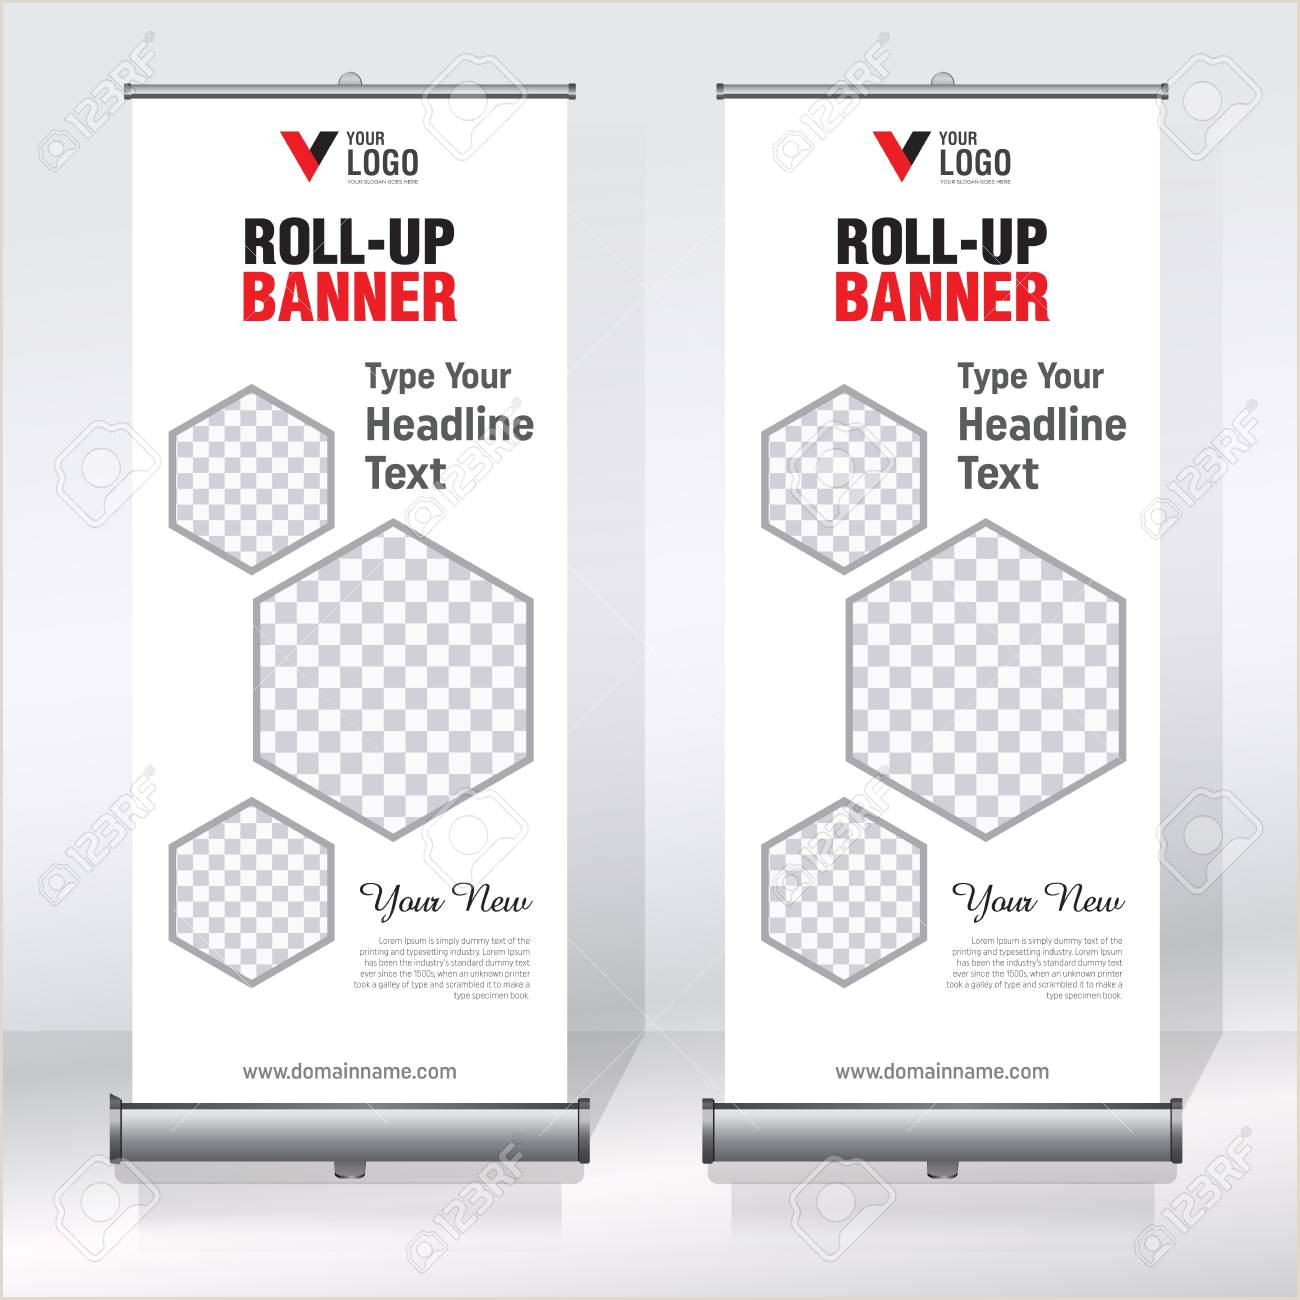 Large Pull Up Banners Roll Up Banner Design Template Abstract Background Pull Up